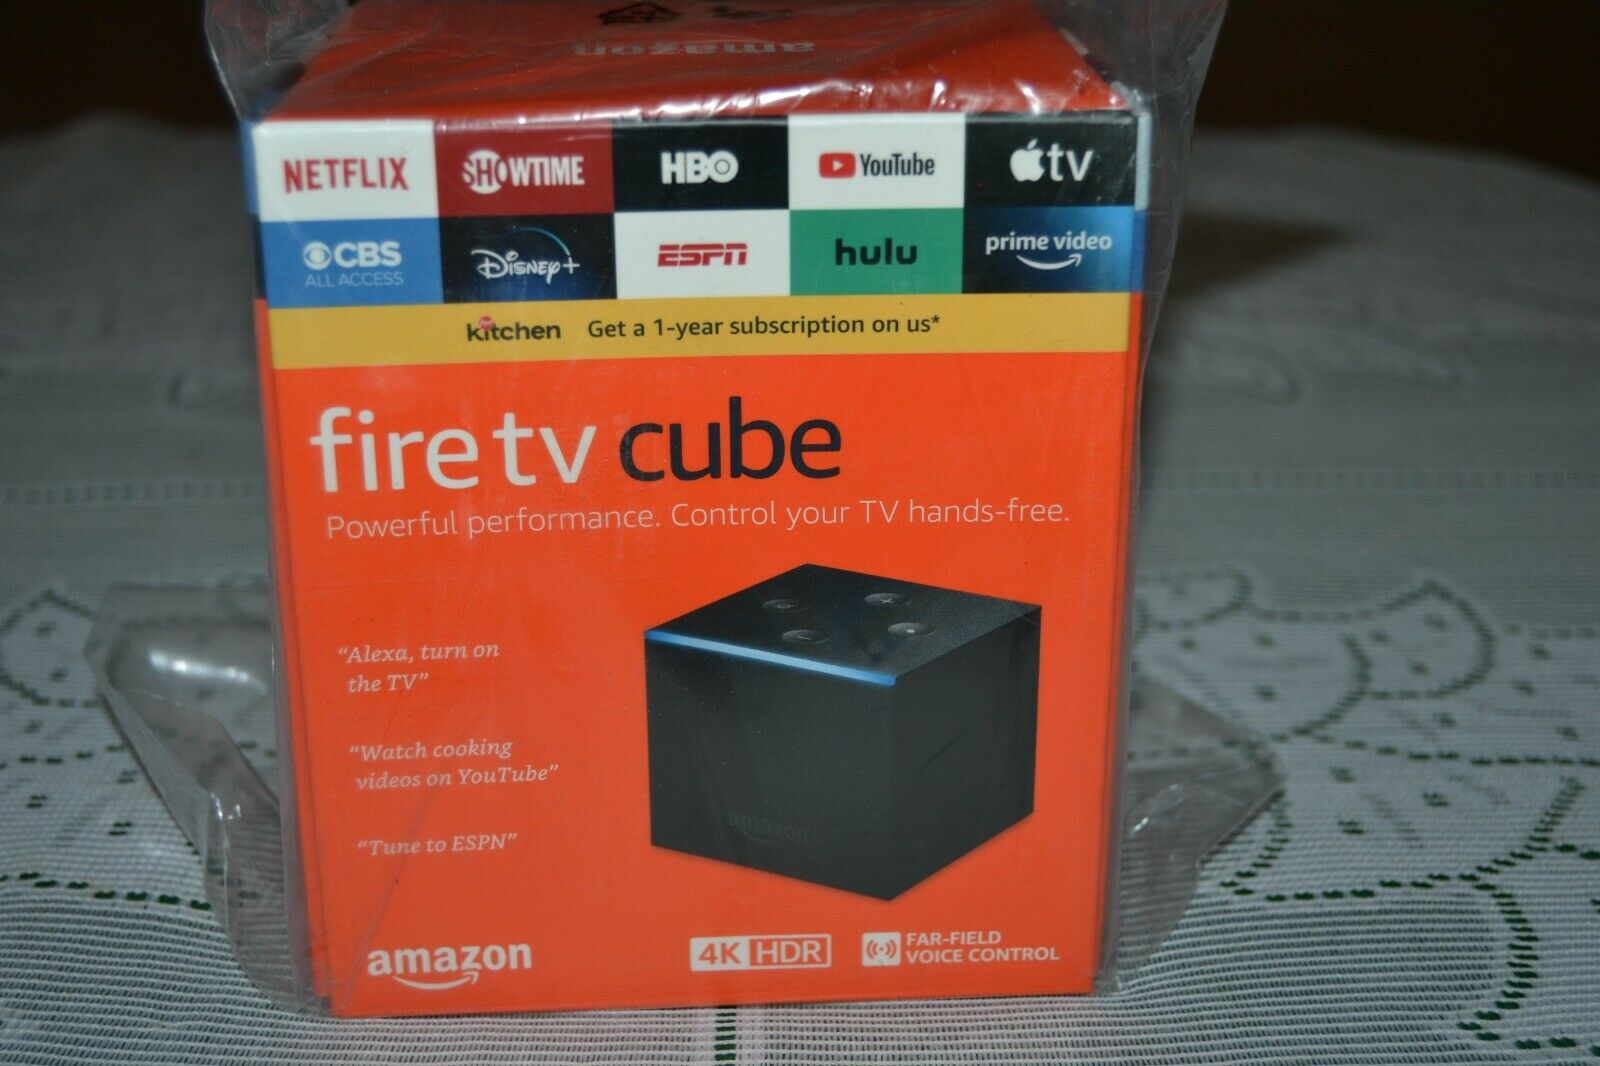 New in box ~ Amazon Fire TV Cube hands free Alexa 4K Streaming Player alexa amazon box cube fire free hands new player streaming